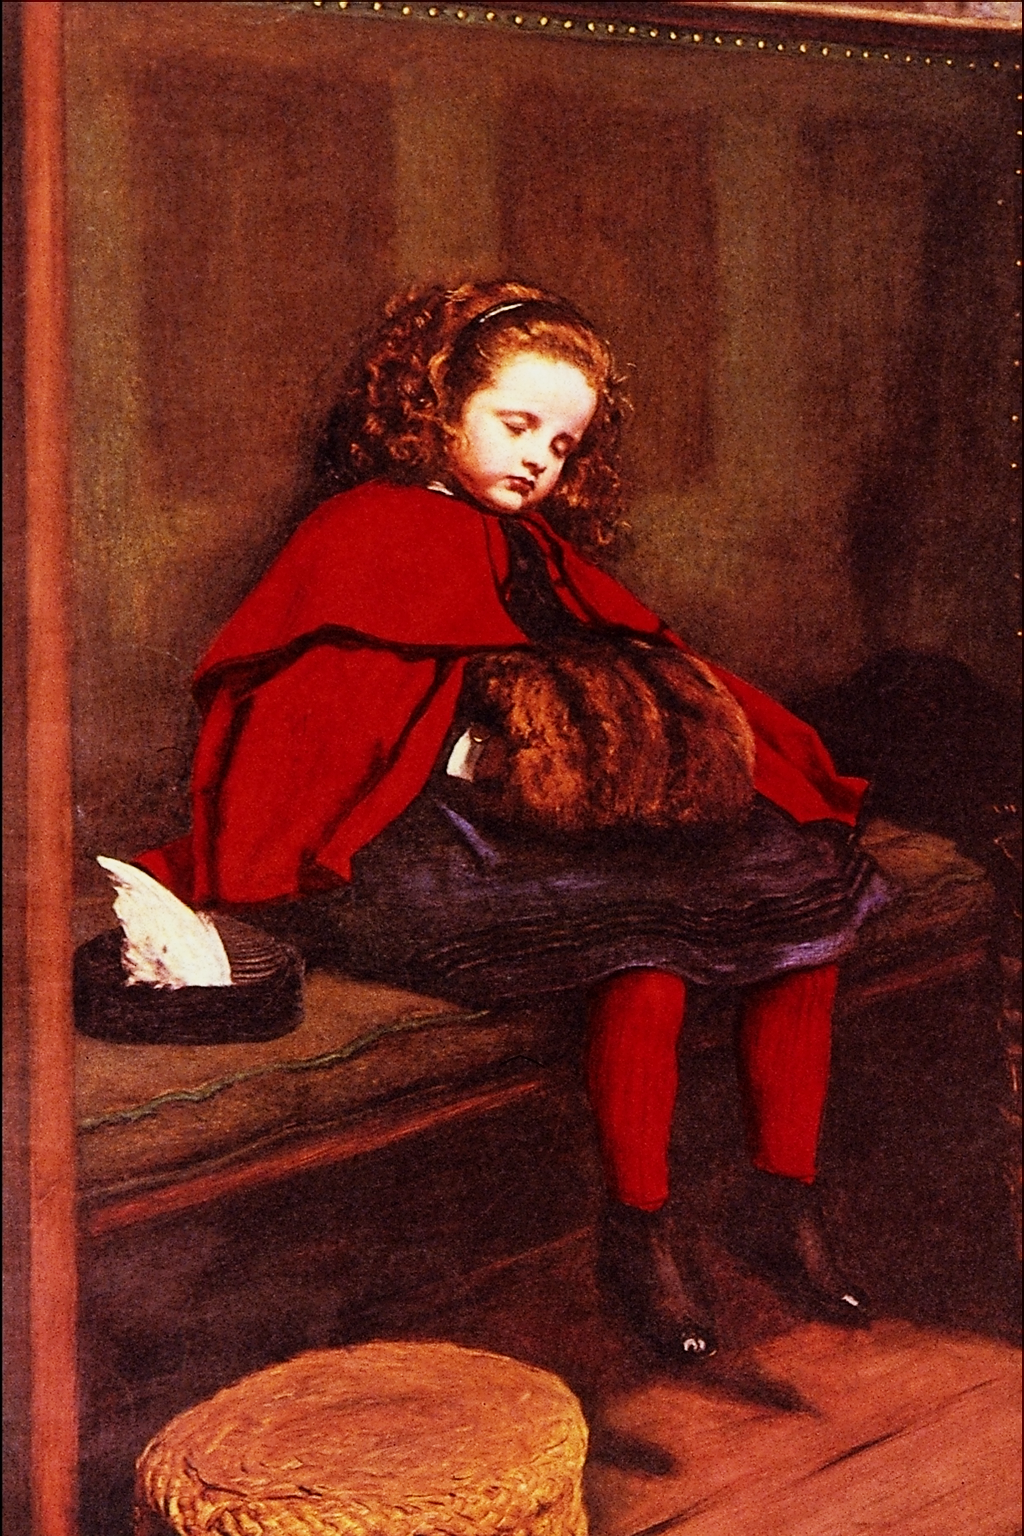 http://upload.wikimedia.org/wikipedia/commons/a/a2/My_Second_Sermon_-_Sir_John_Everett_Millais.png